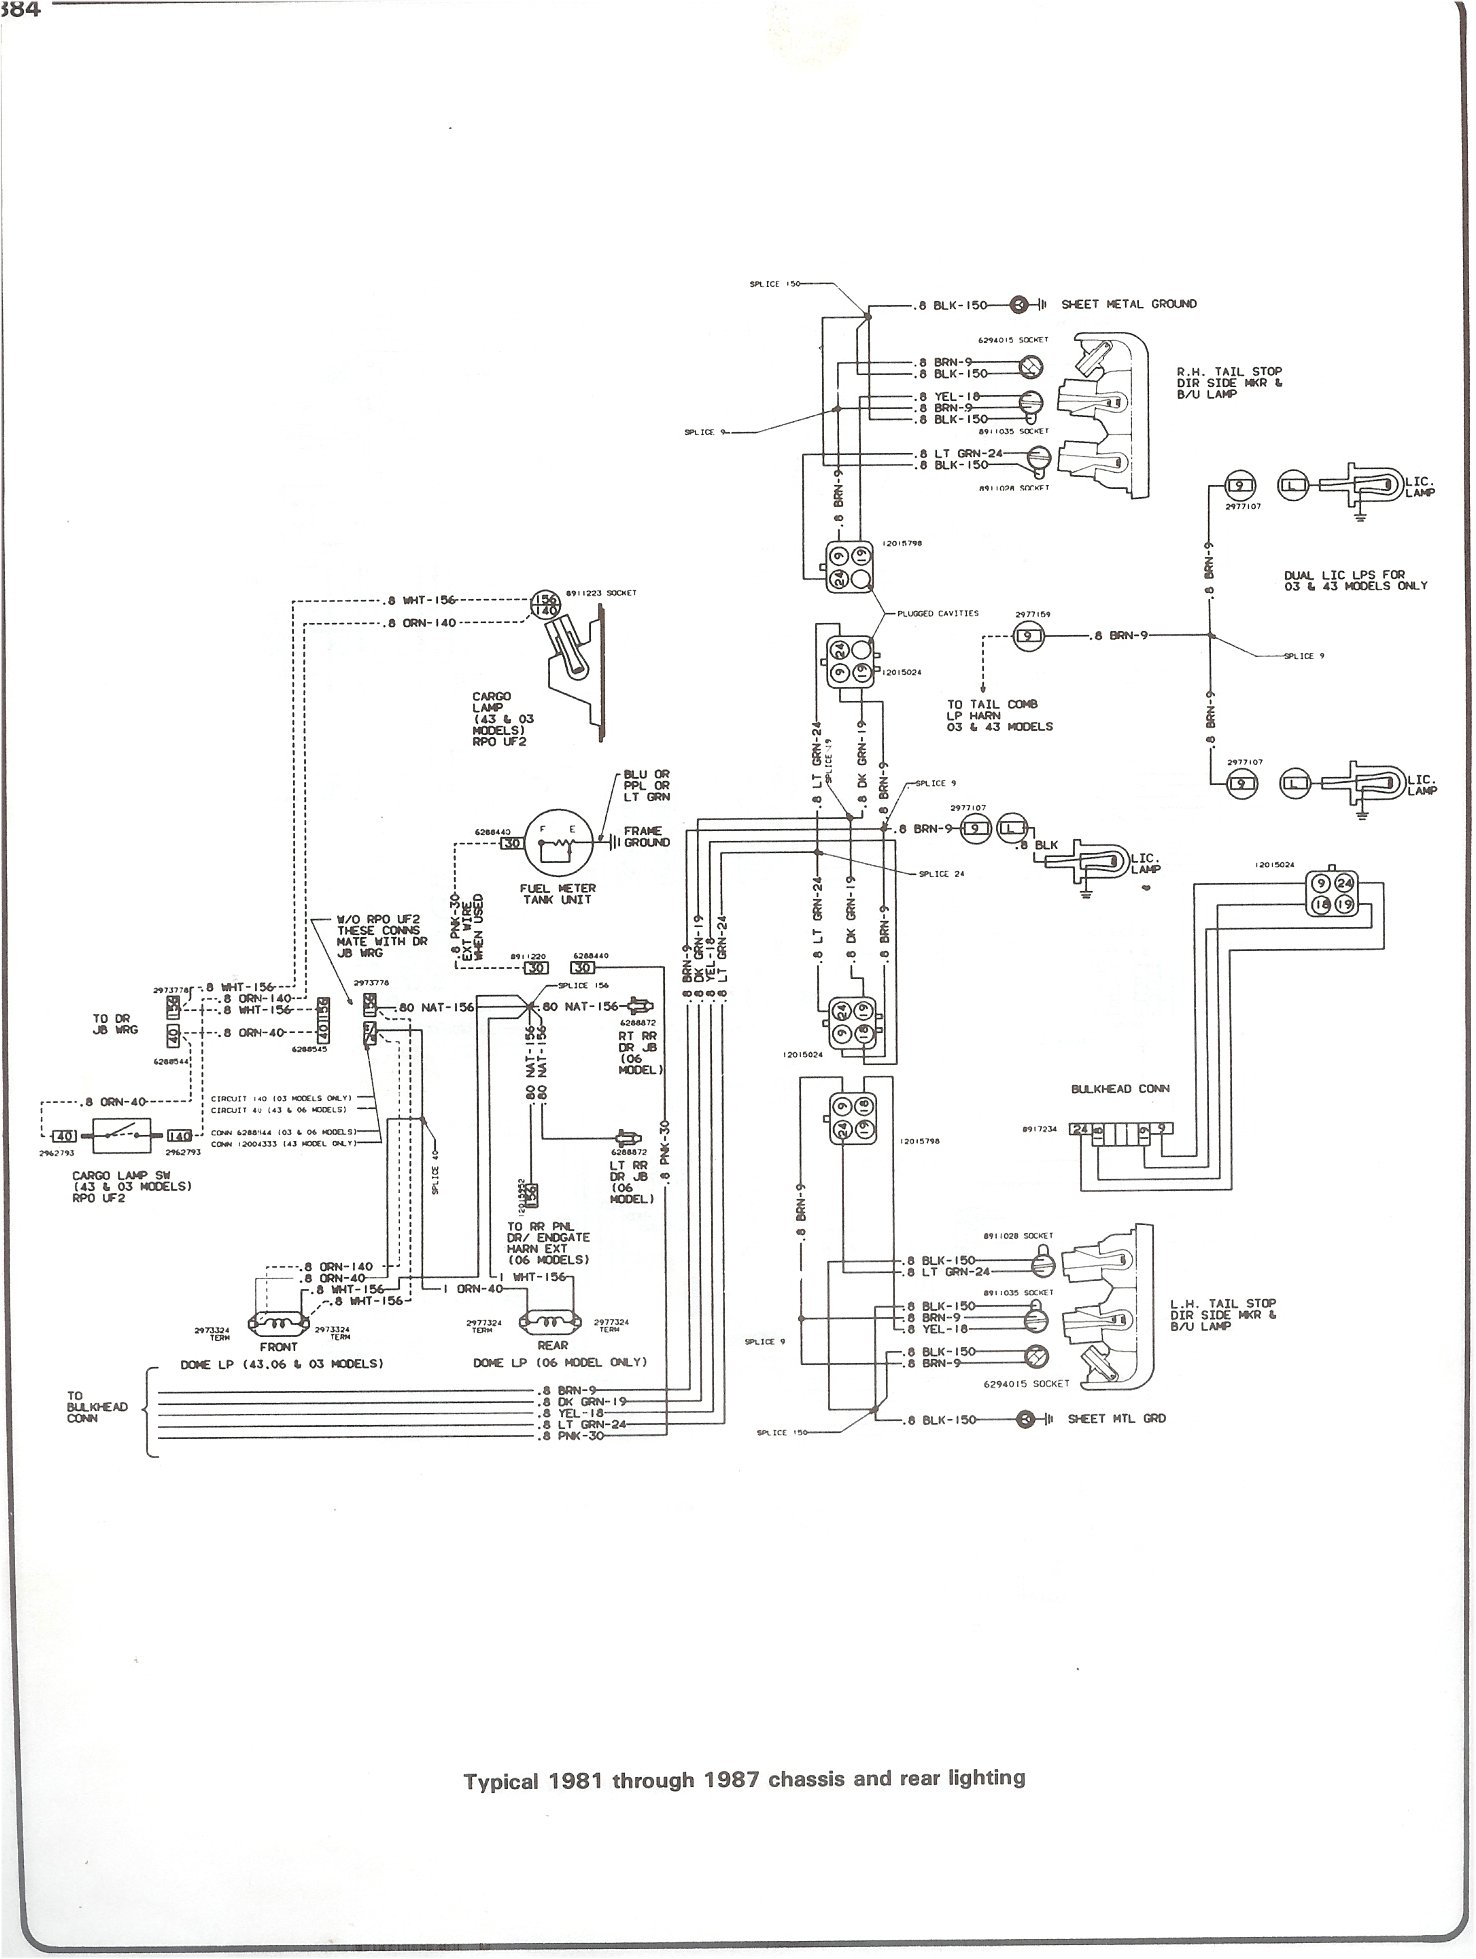 1985 c10 wiring diagram 2 20 danishfashion mode de Car Amplifier Wiring Diagram 1982 chevy c10 diagram air conditioning 6 17 woodmarquetry de u2022 rh 6 17 woodmarquetry de 1985 chevy c10 wiring diagram 1985 chevrolet c10 wiring diagram